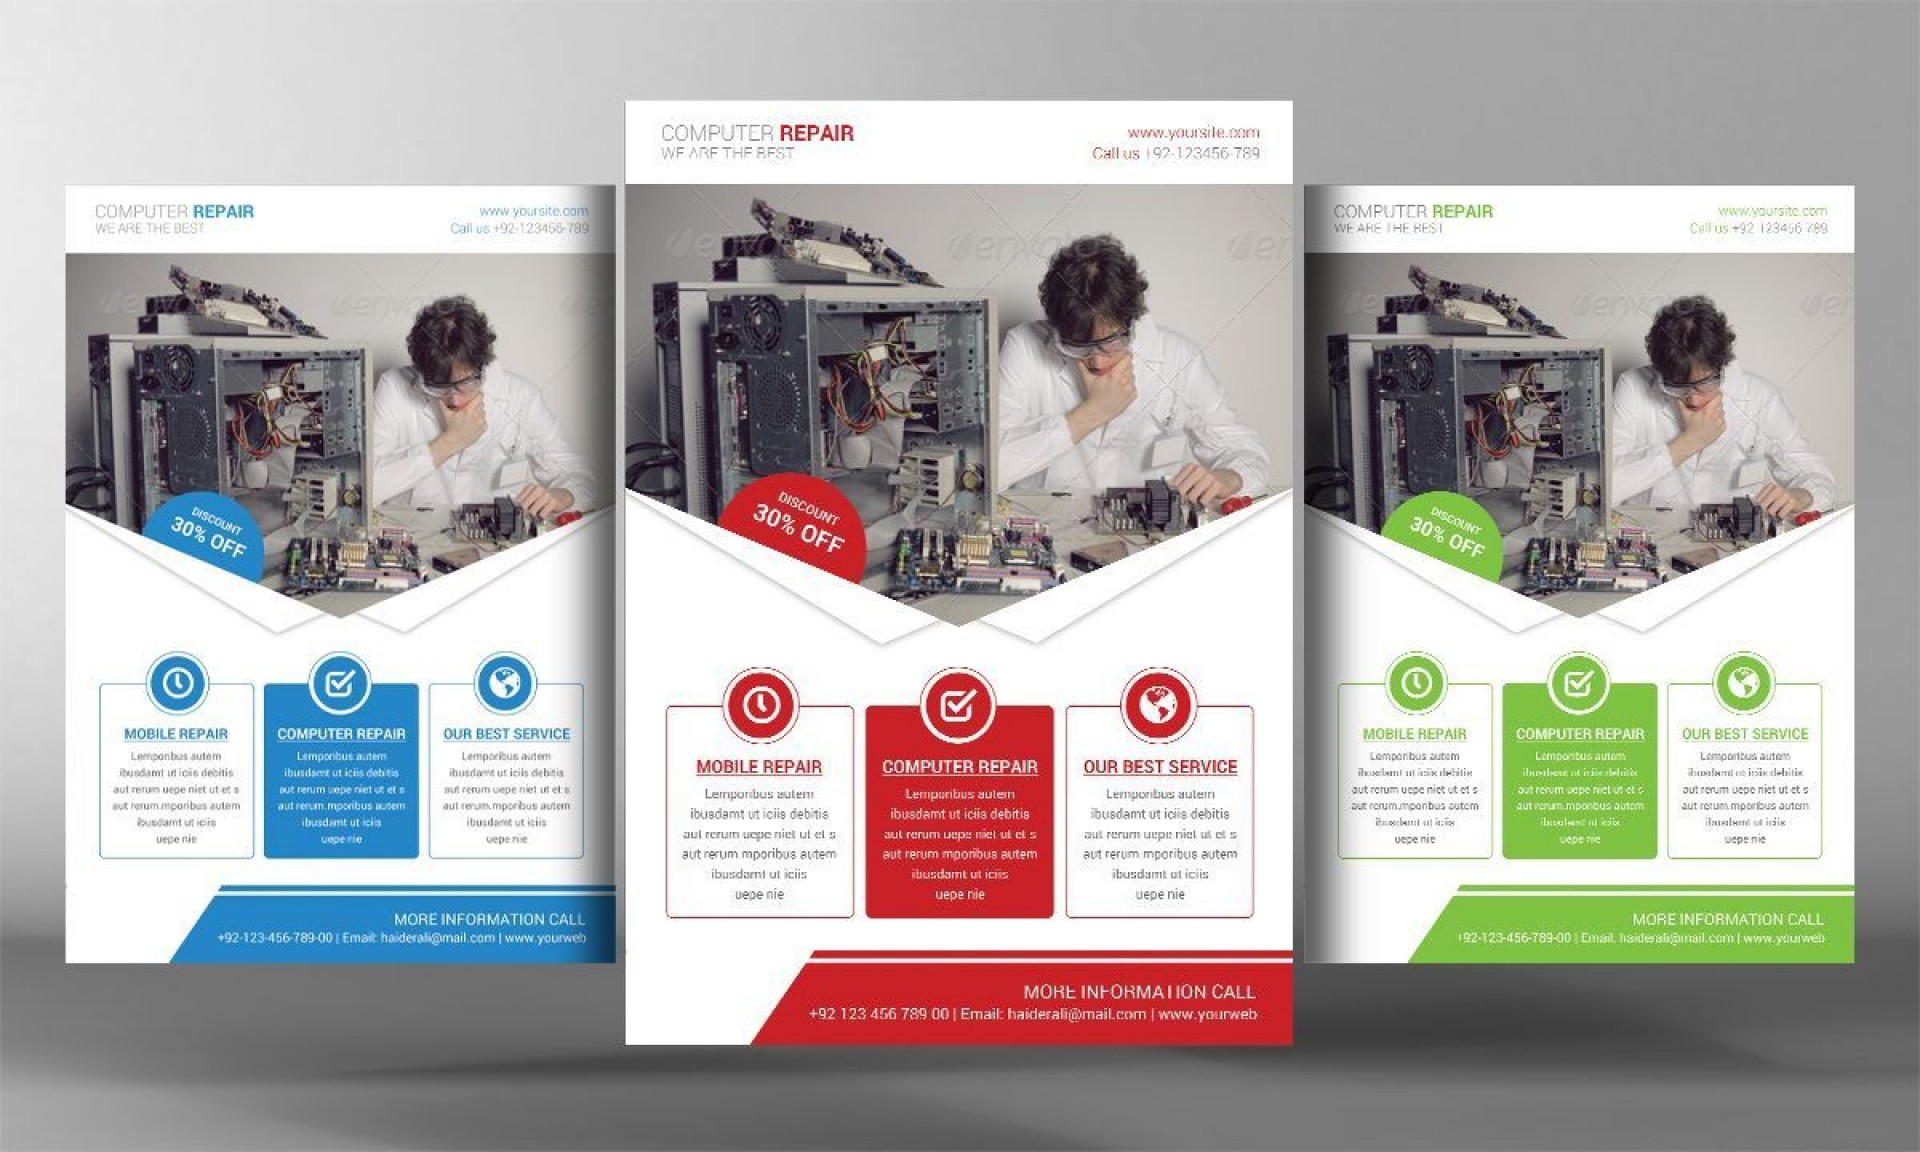 000 Staggering Computer Repair Flyer Template Concept  Word Busines Free1920